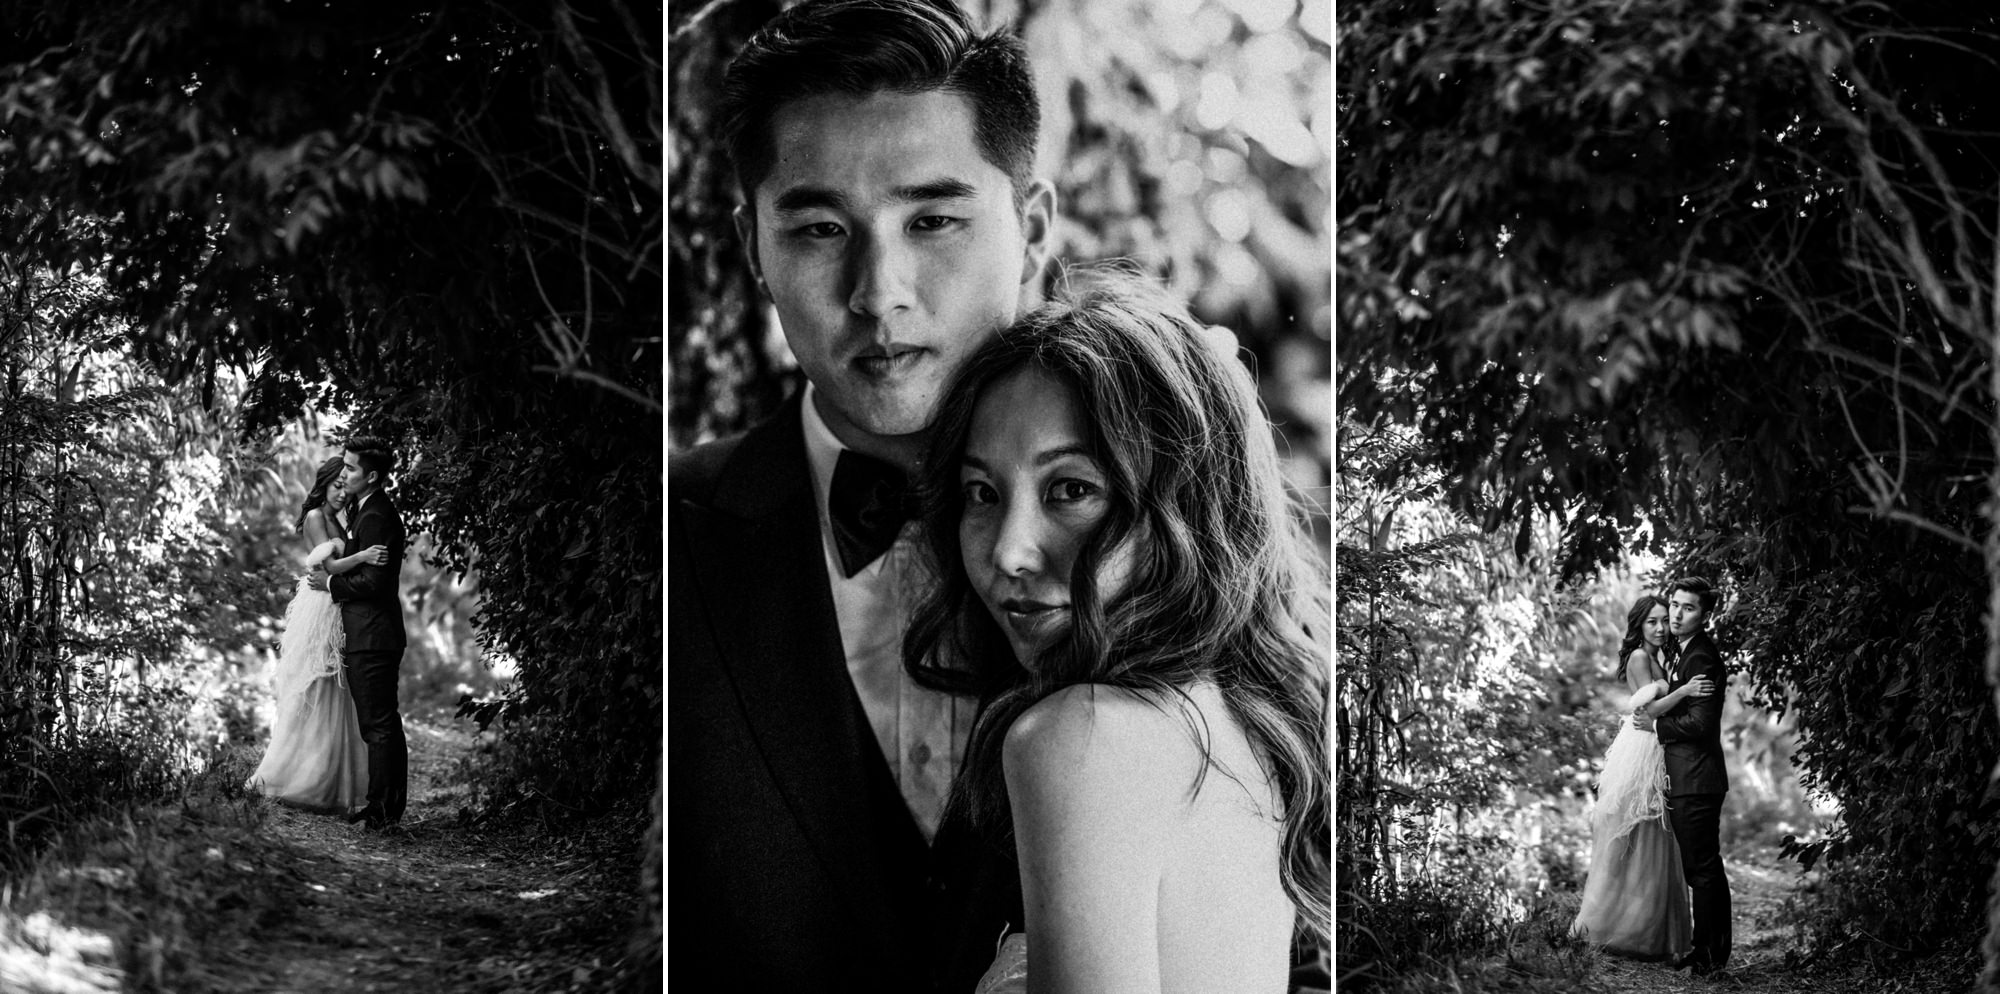 natural wedding photo couple session barcelona 0050 1